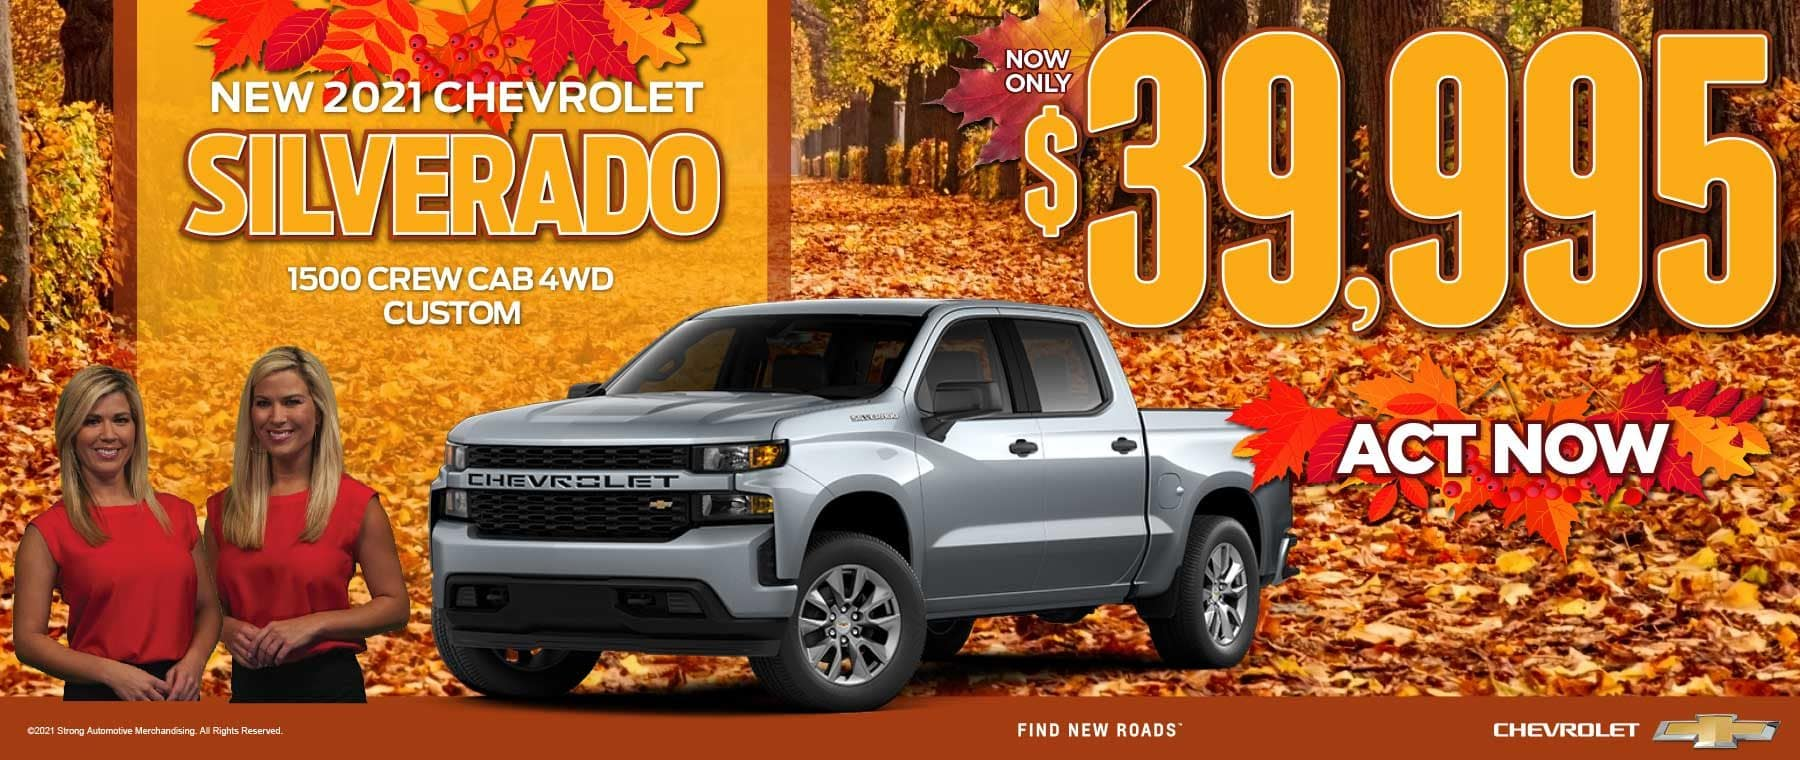 NEW 2021 CHEVROLET SILVERADO 1500 CREW CAB 4WD. NOW ONLY $39,995. ACT NOW!